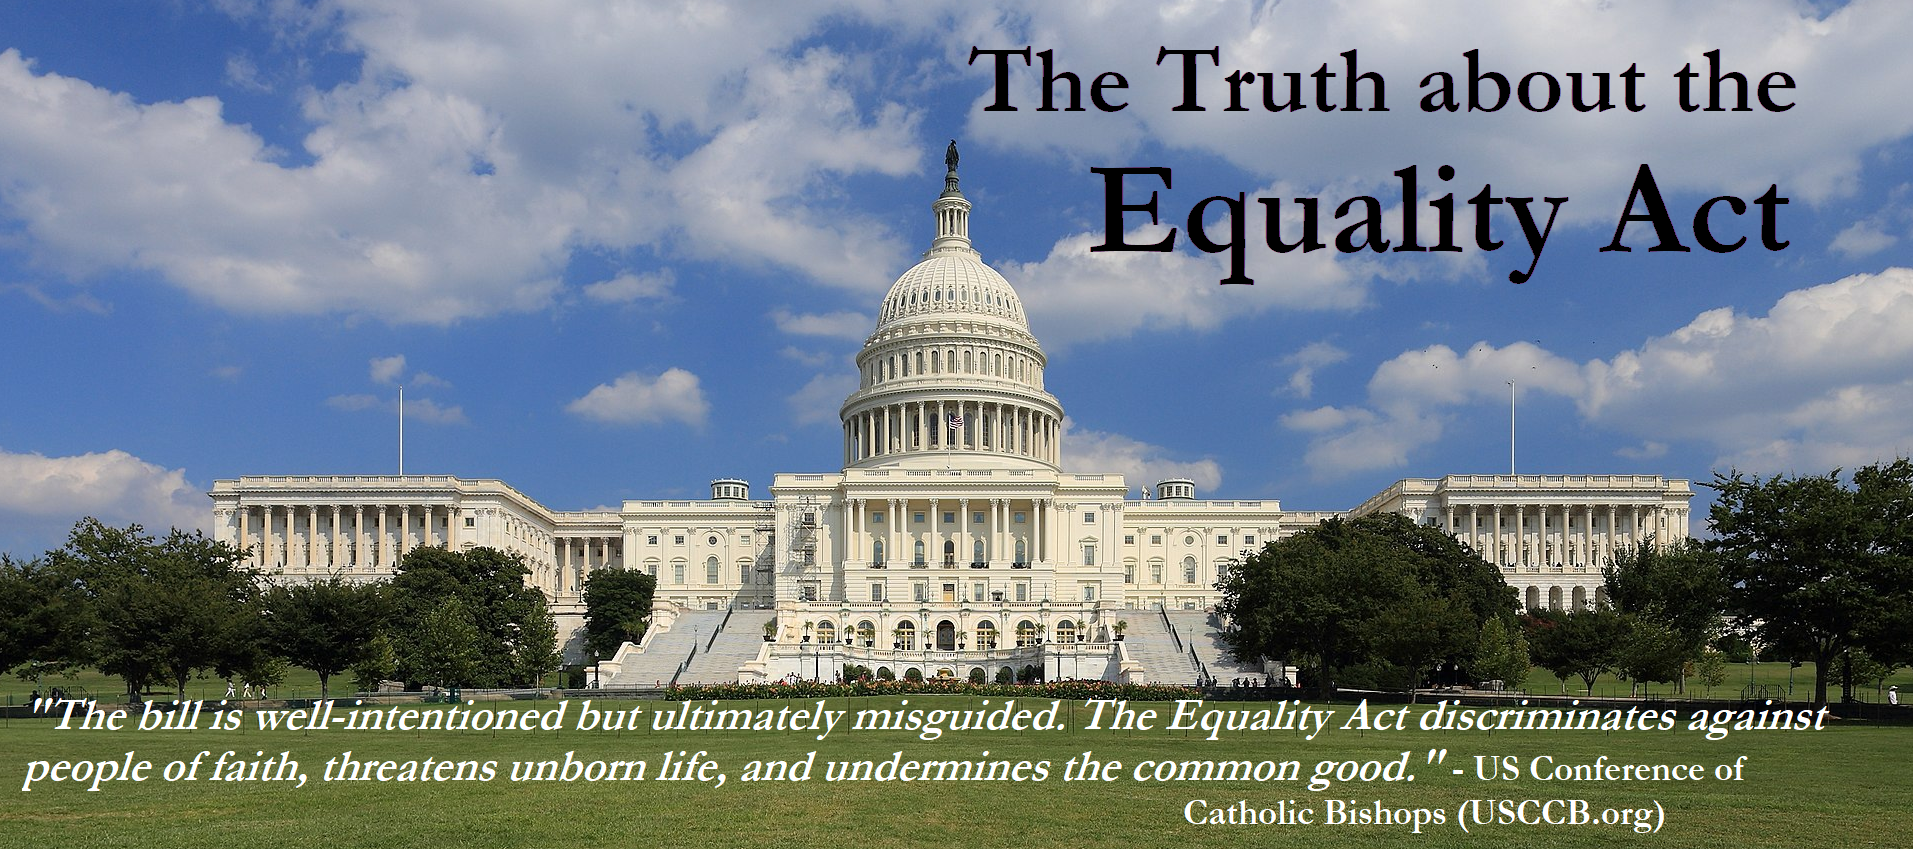 The Truth About the Equality ActMarch 7th